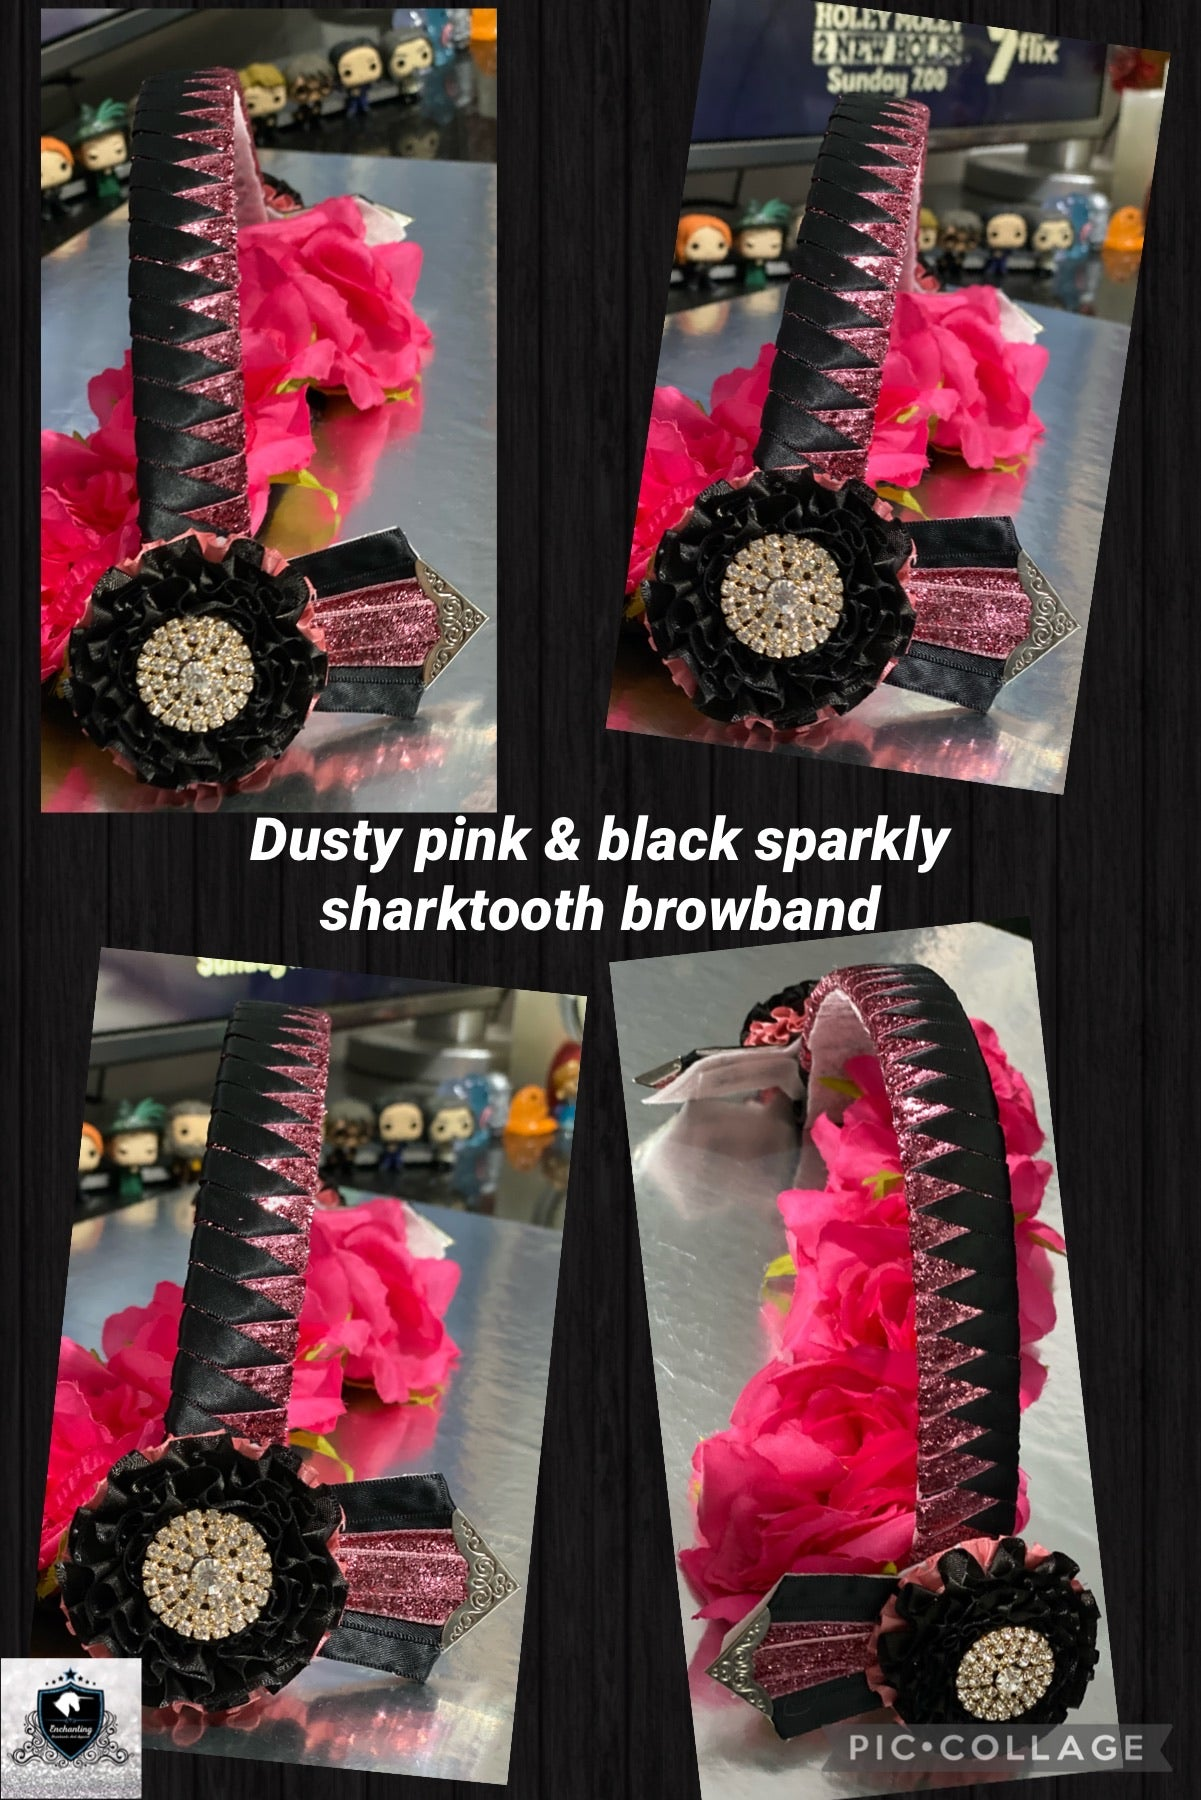 Dusty pink & black sparkly sharktooth browband